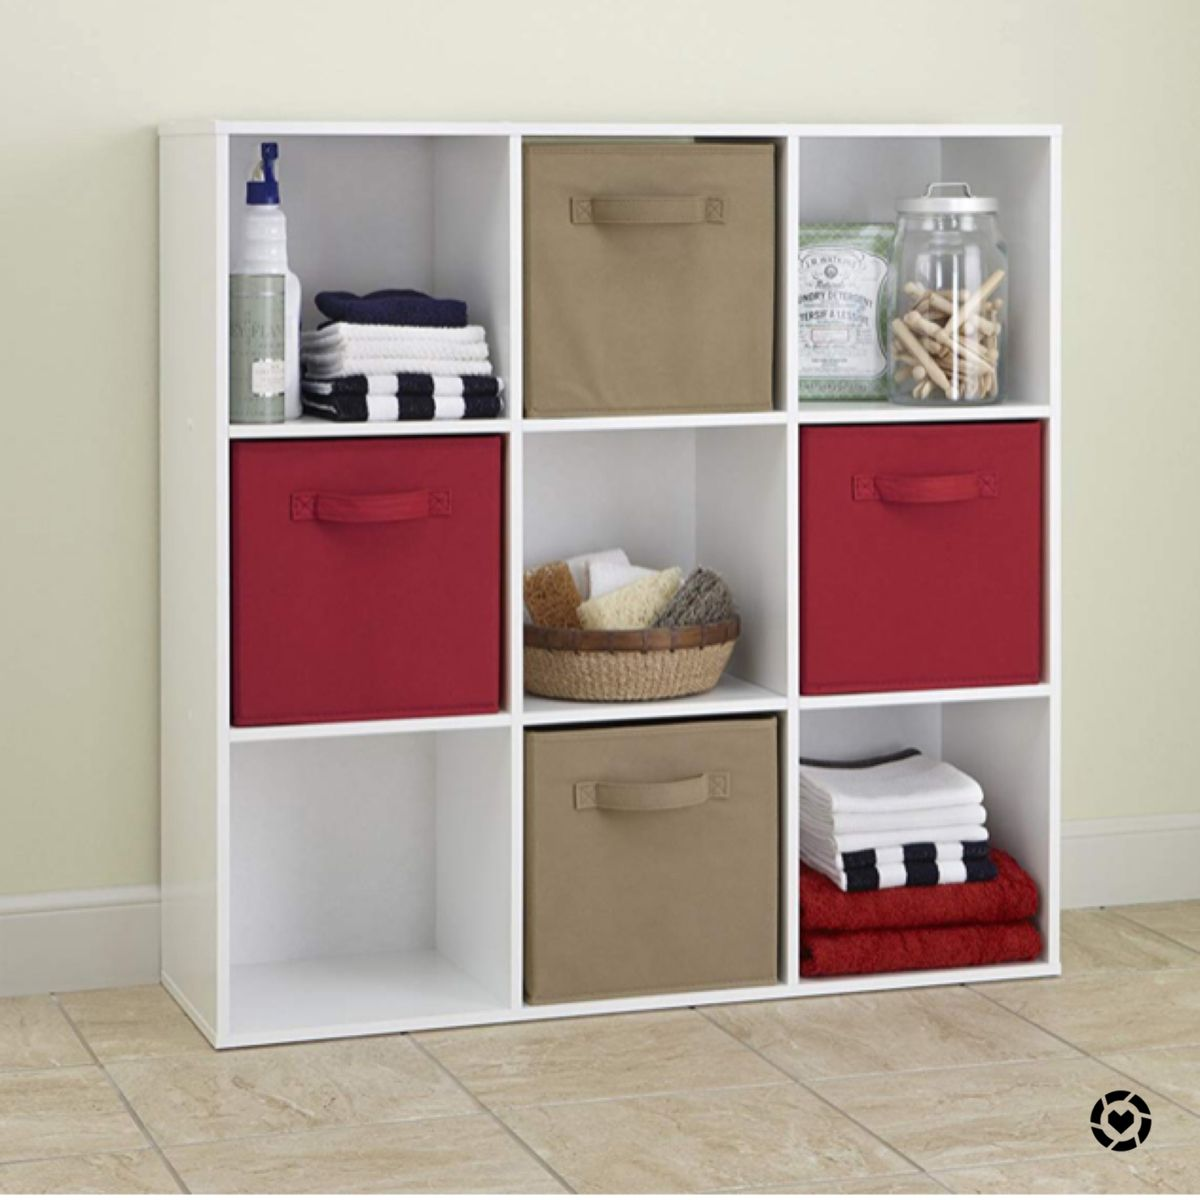 We Have One Of These In Each Of Our Kids Rooms Awesome Storage Storage Cubes Are On Sale Http In 2020 Ikea Cube Shelves Wood Storage Shelves White Wood Shelves